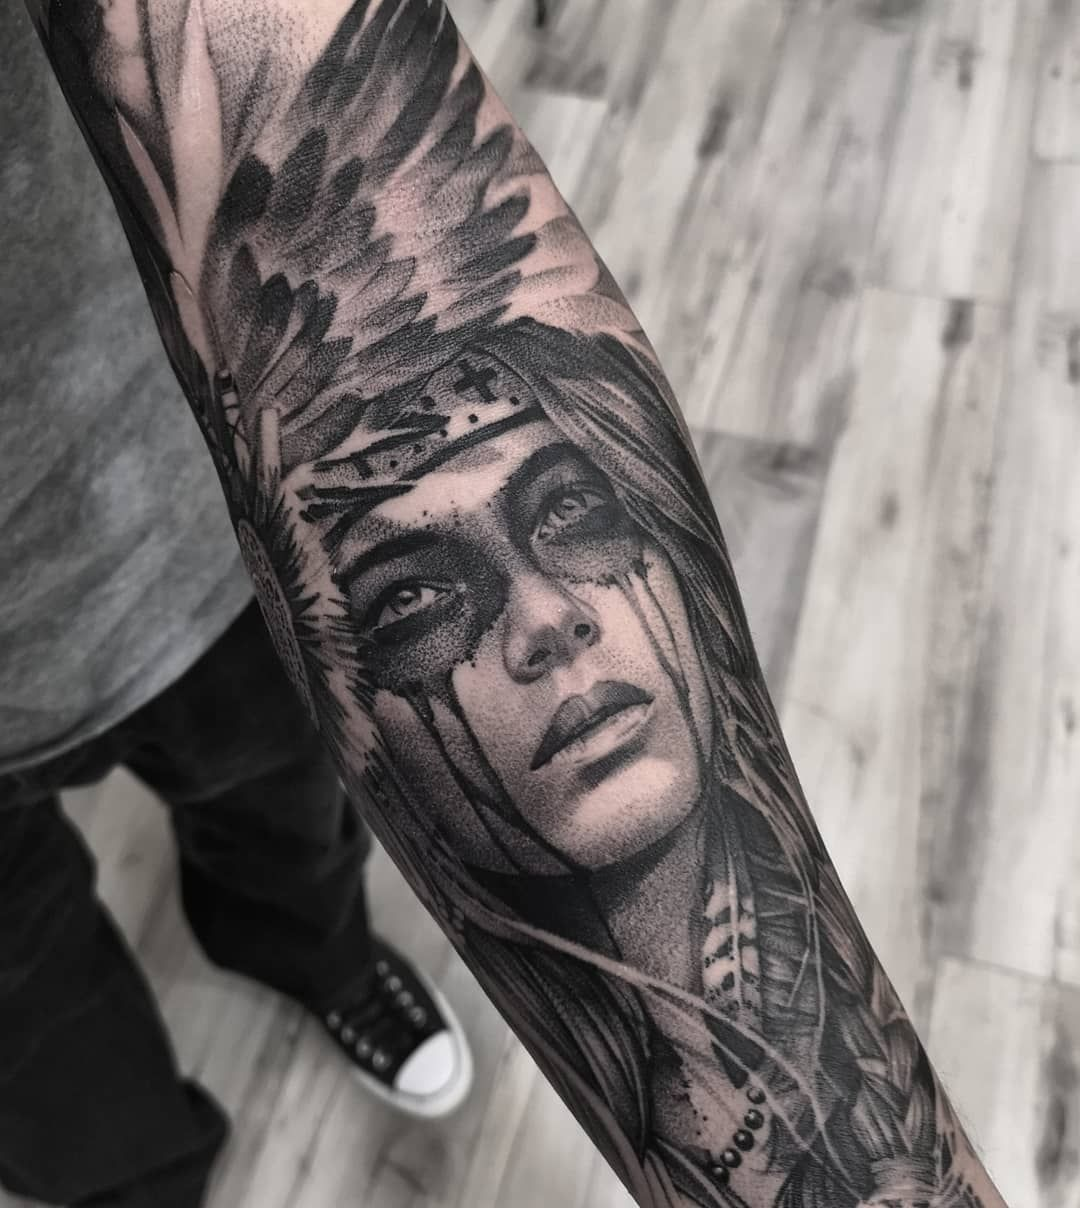 Native American Tat Native American Tattoos American Tattoos Native American Tattoo Sleeve